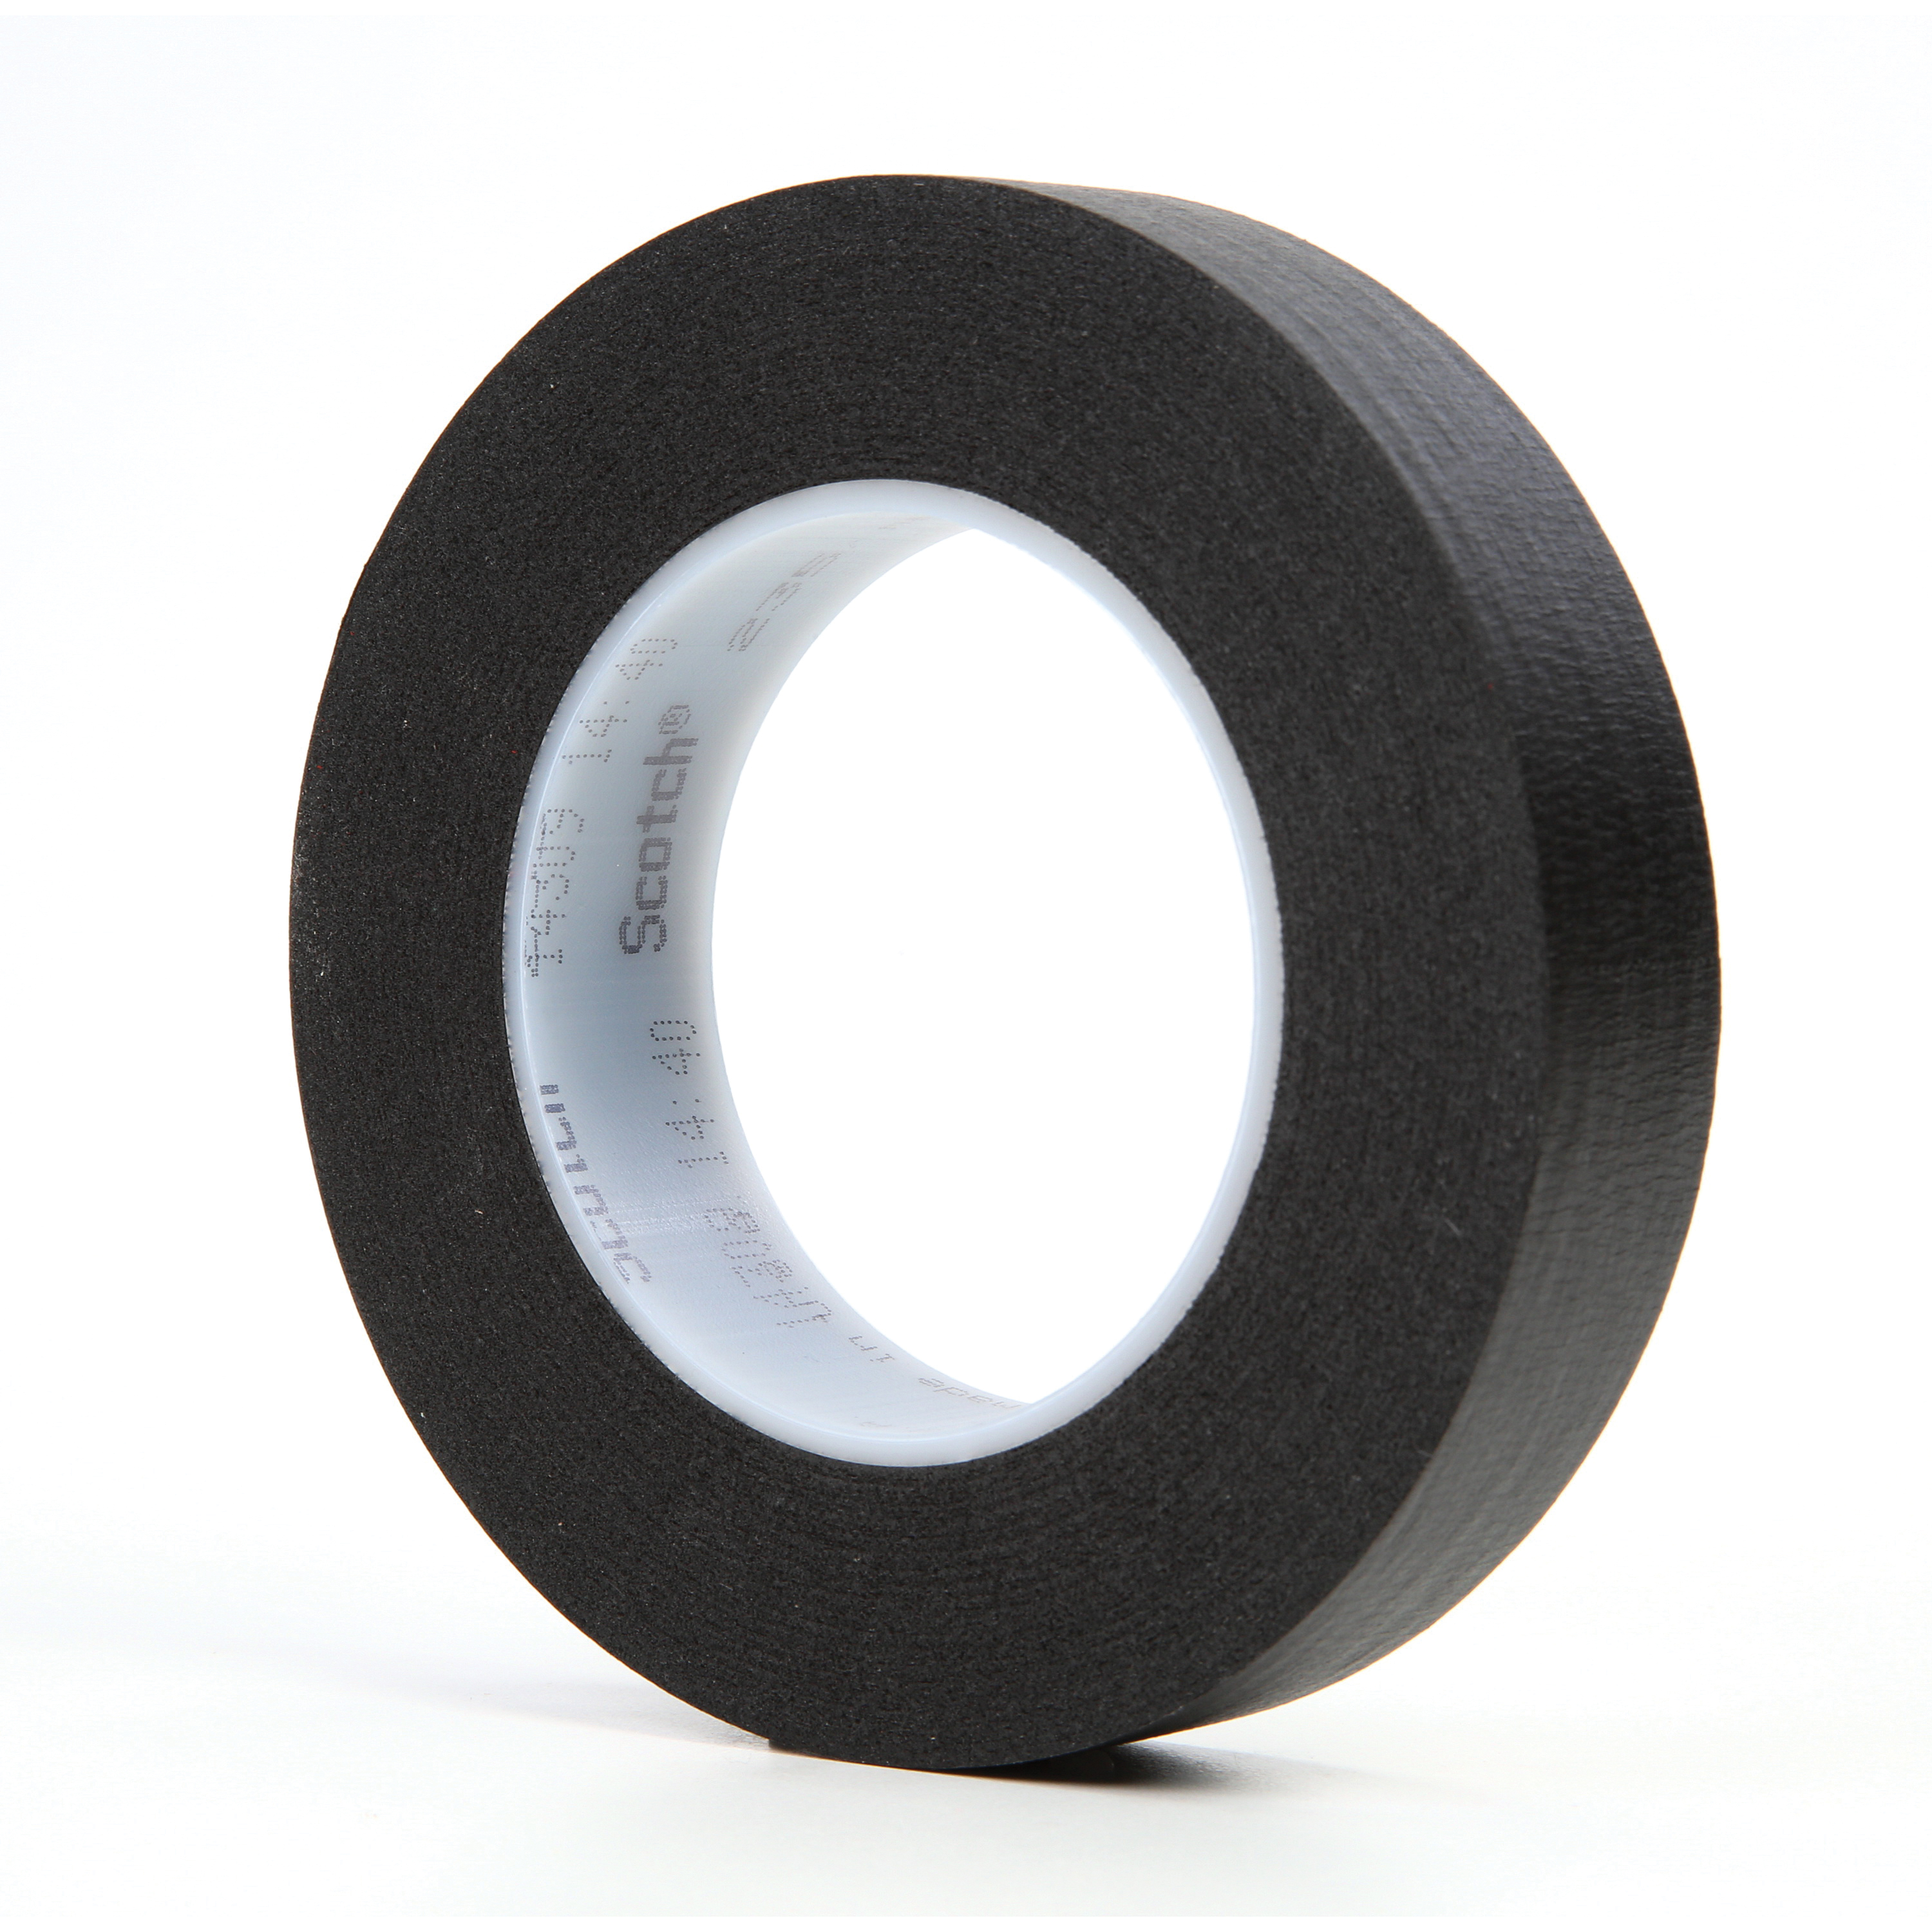 3M™ 021200-02840 235 Photographic Tape, 1 in W x 60 yd Roll L, 7 mil THK, Black